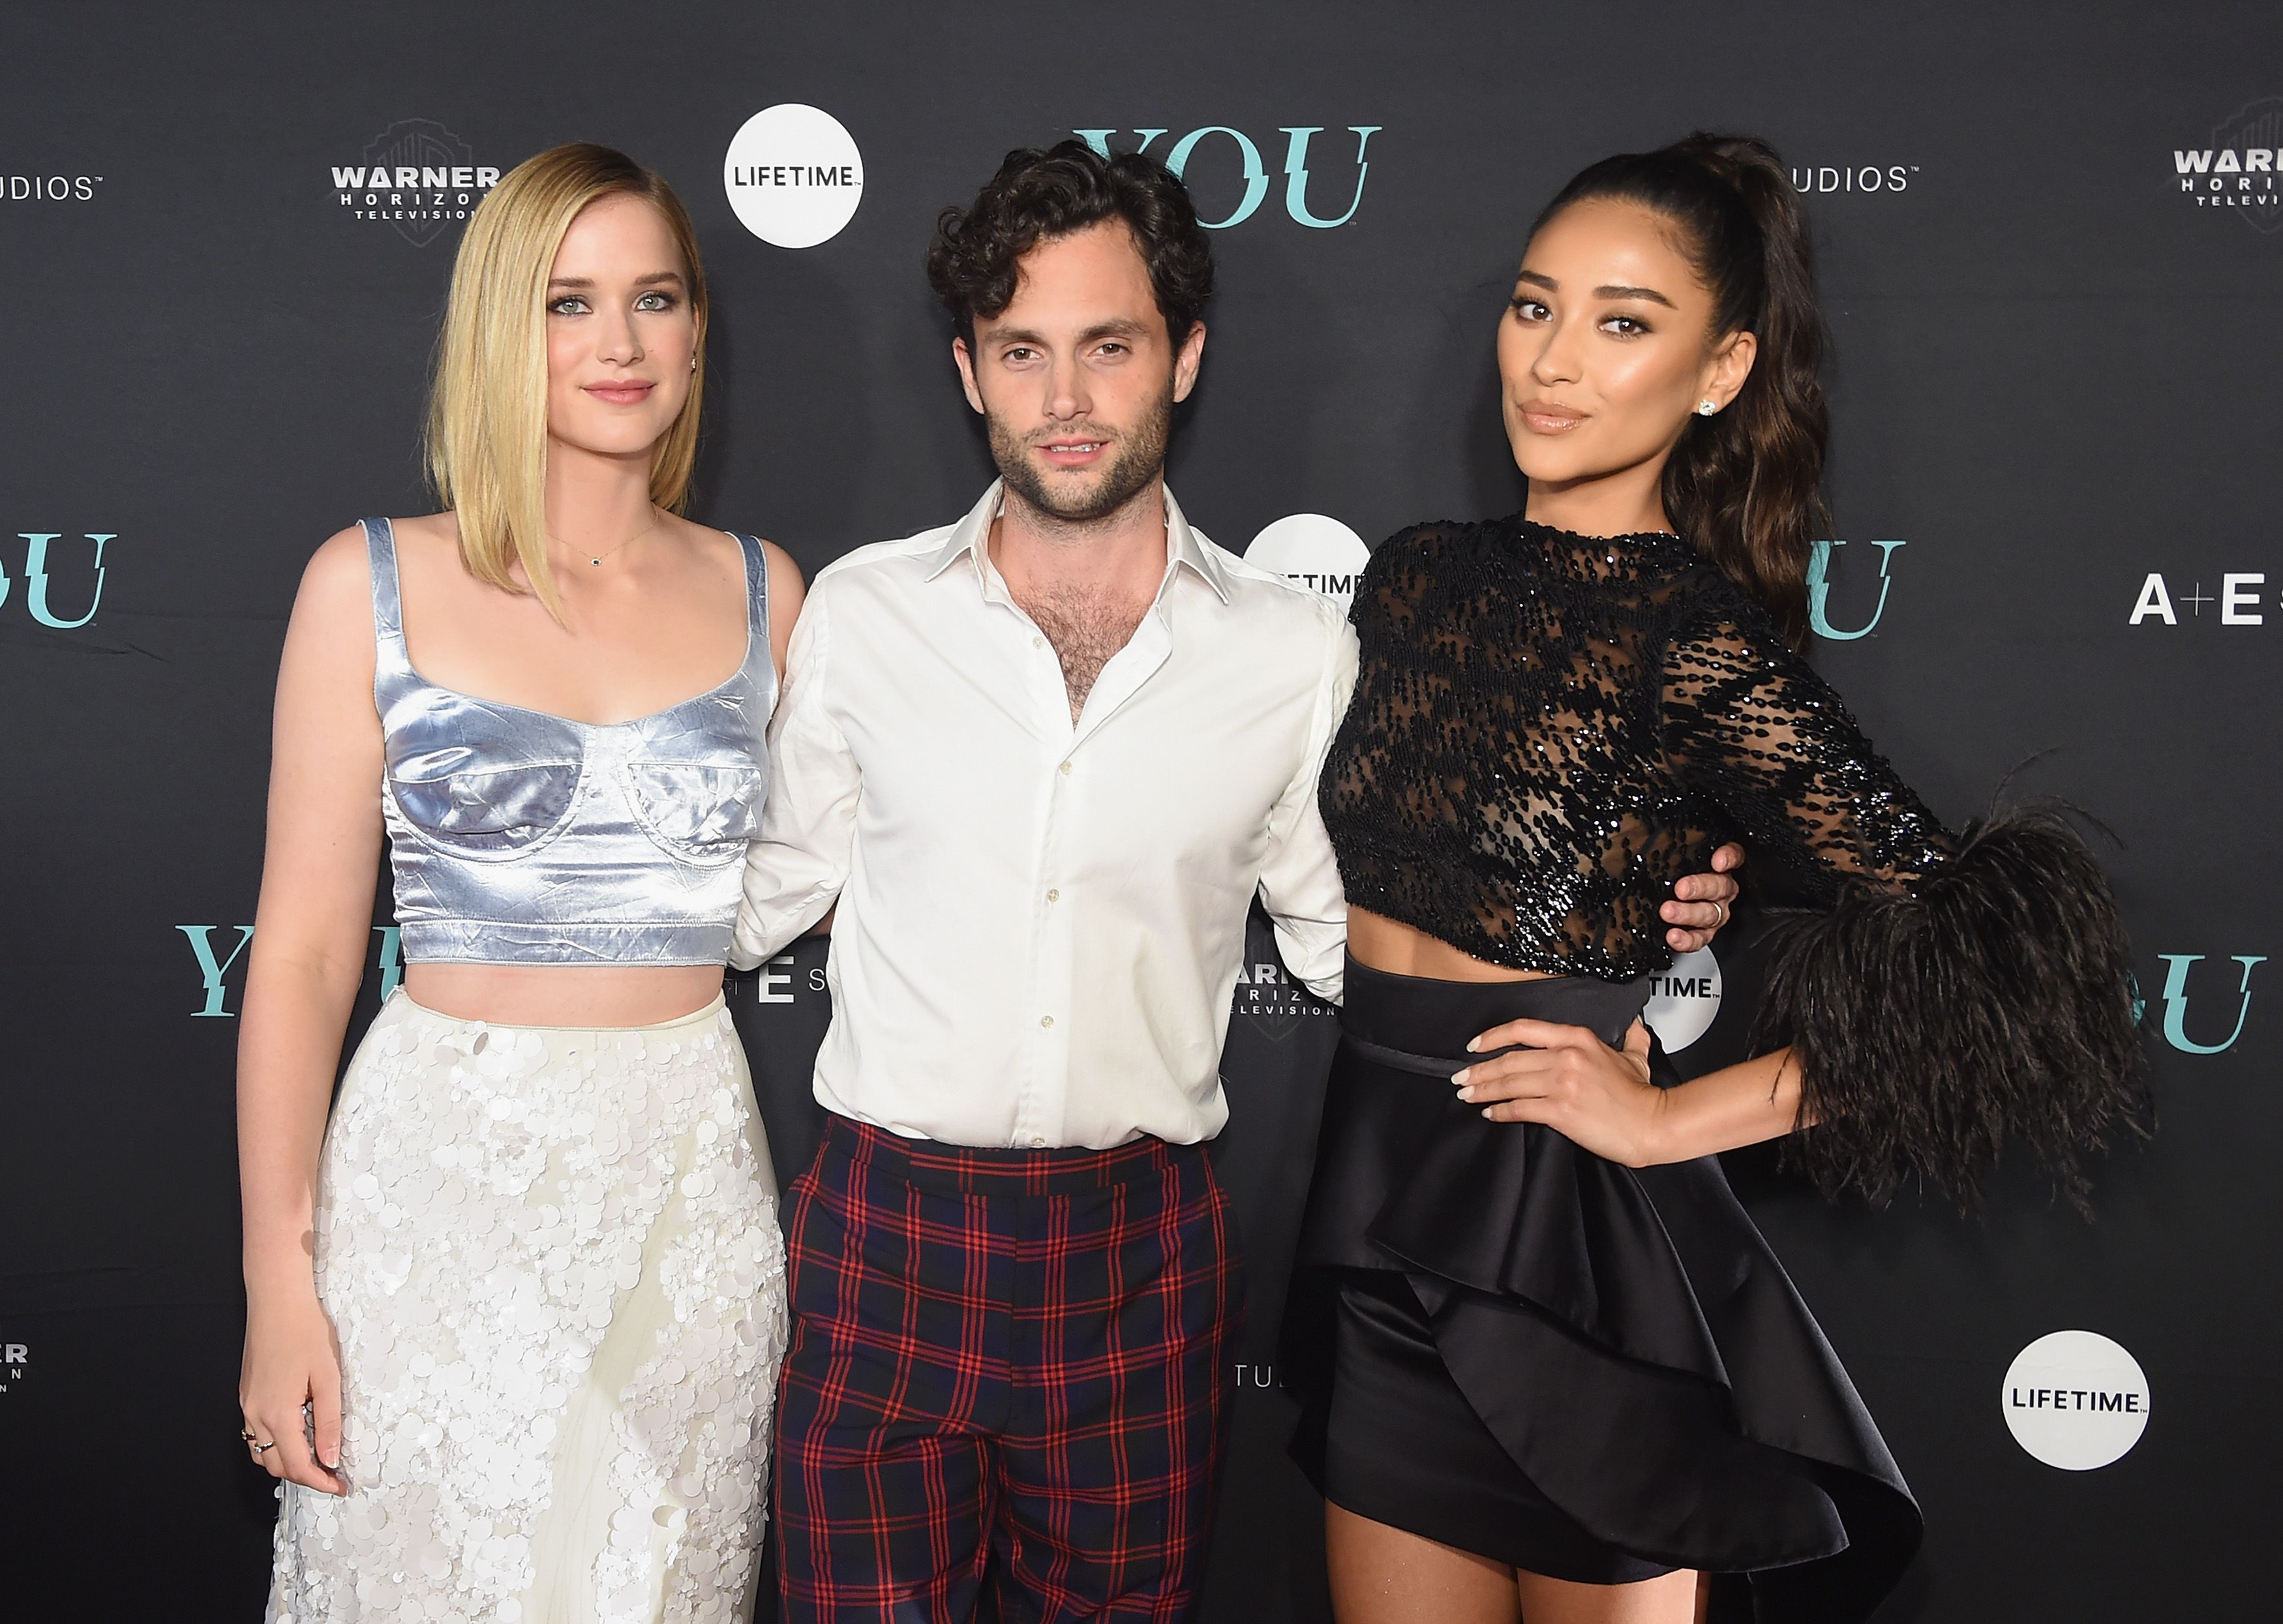 Arriva You, la serie tv conturbante con Penn Badgley di Gossip Girl e Shay Mitchell di Pretty Little Liars